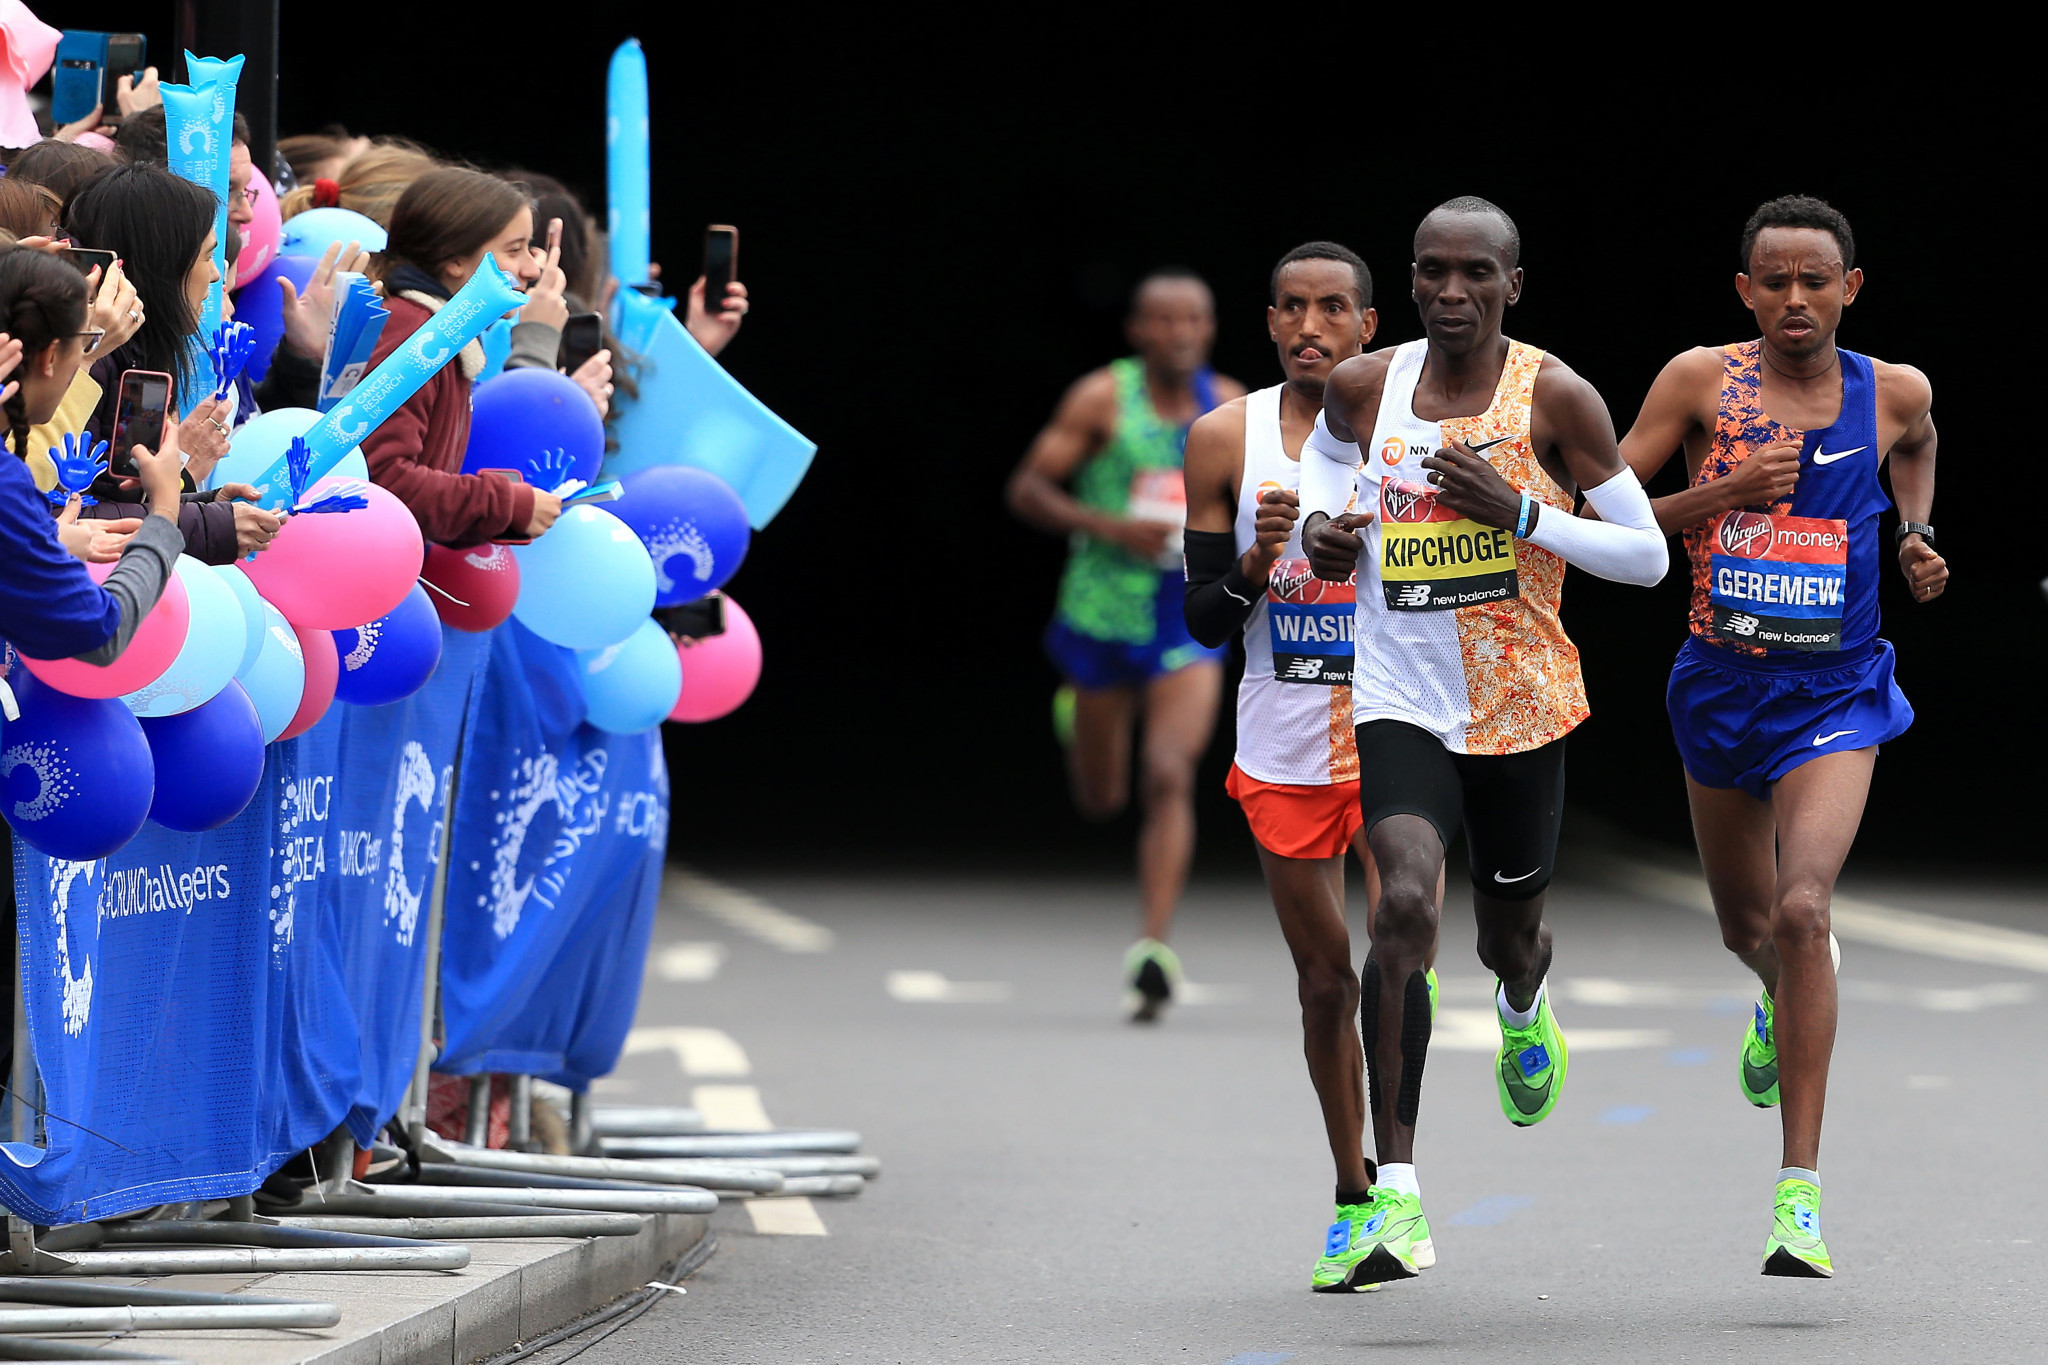 London and Boston Marathons postponed over coronavirus pandemic